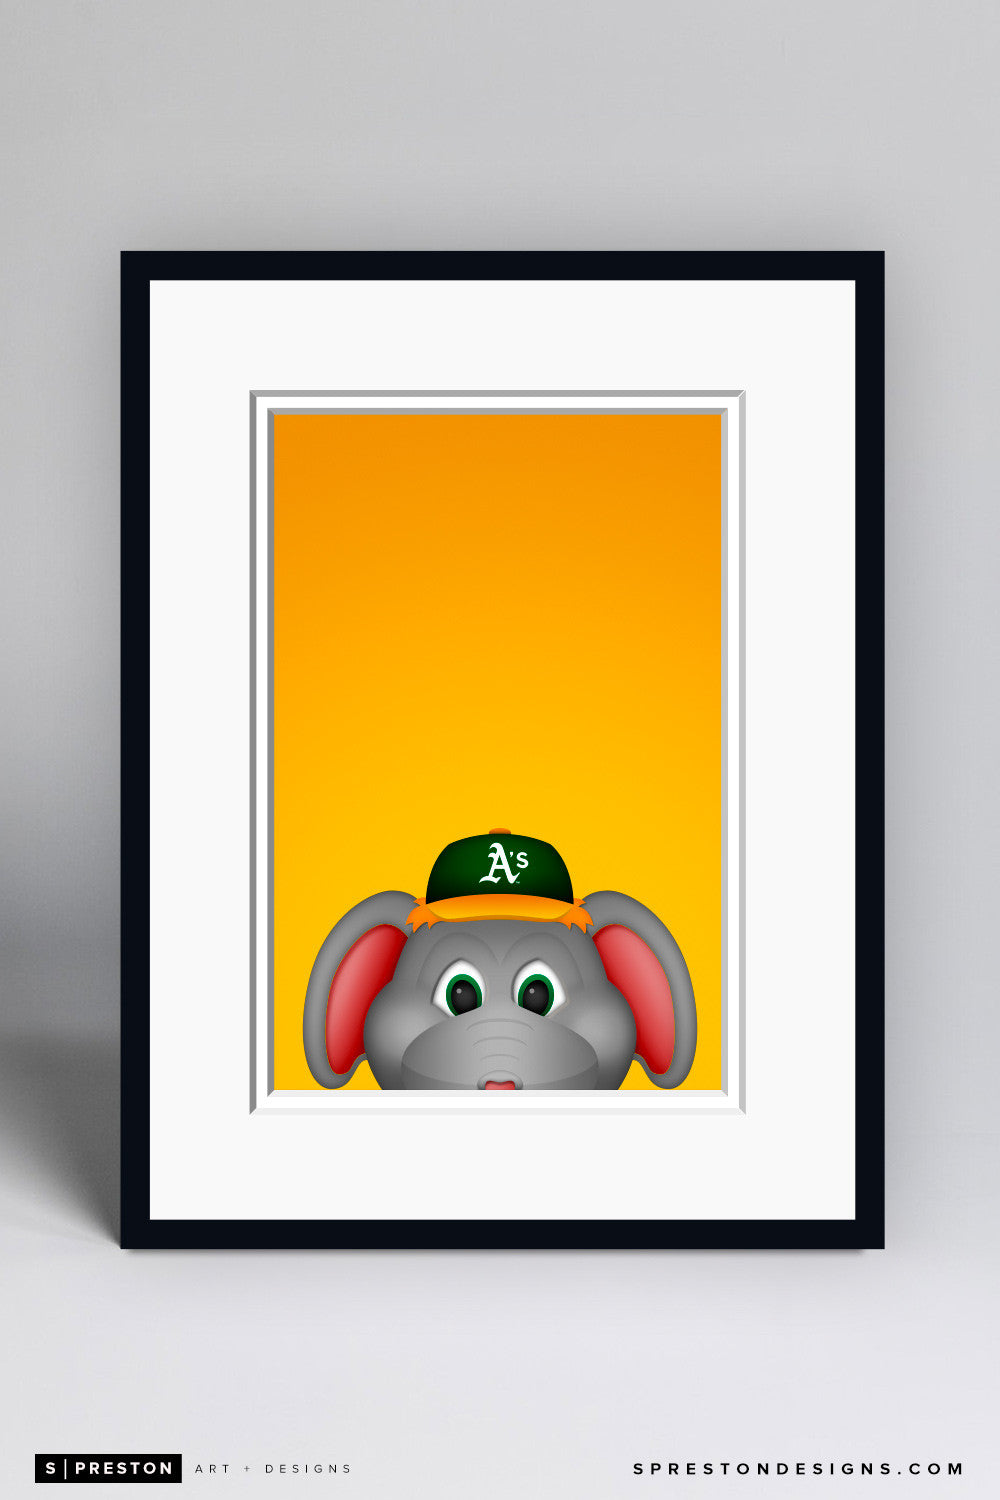 Minimalist Stomper - Oakland Athletics - S. Preston